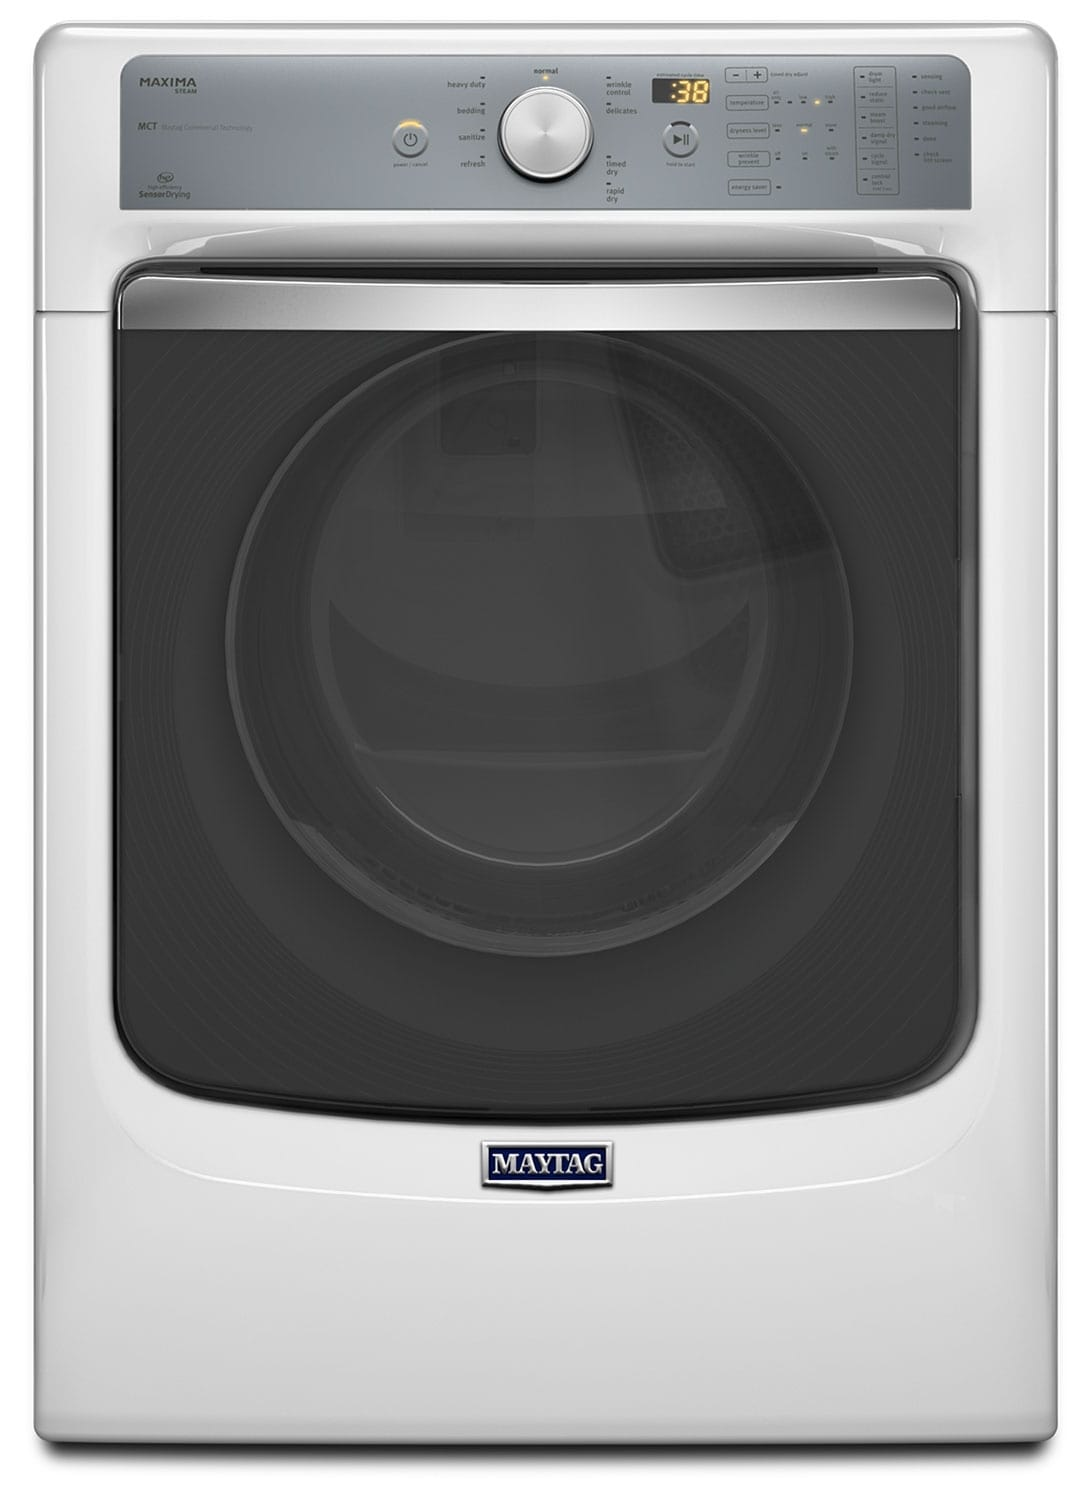 Washers and Dryers - Maytag White Electric Dryer (7.3 Cu. Ft.) - YMED7100DW